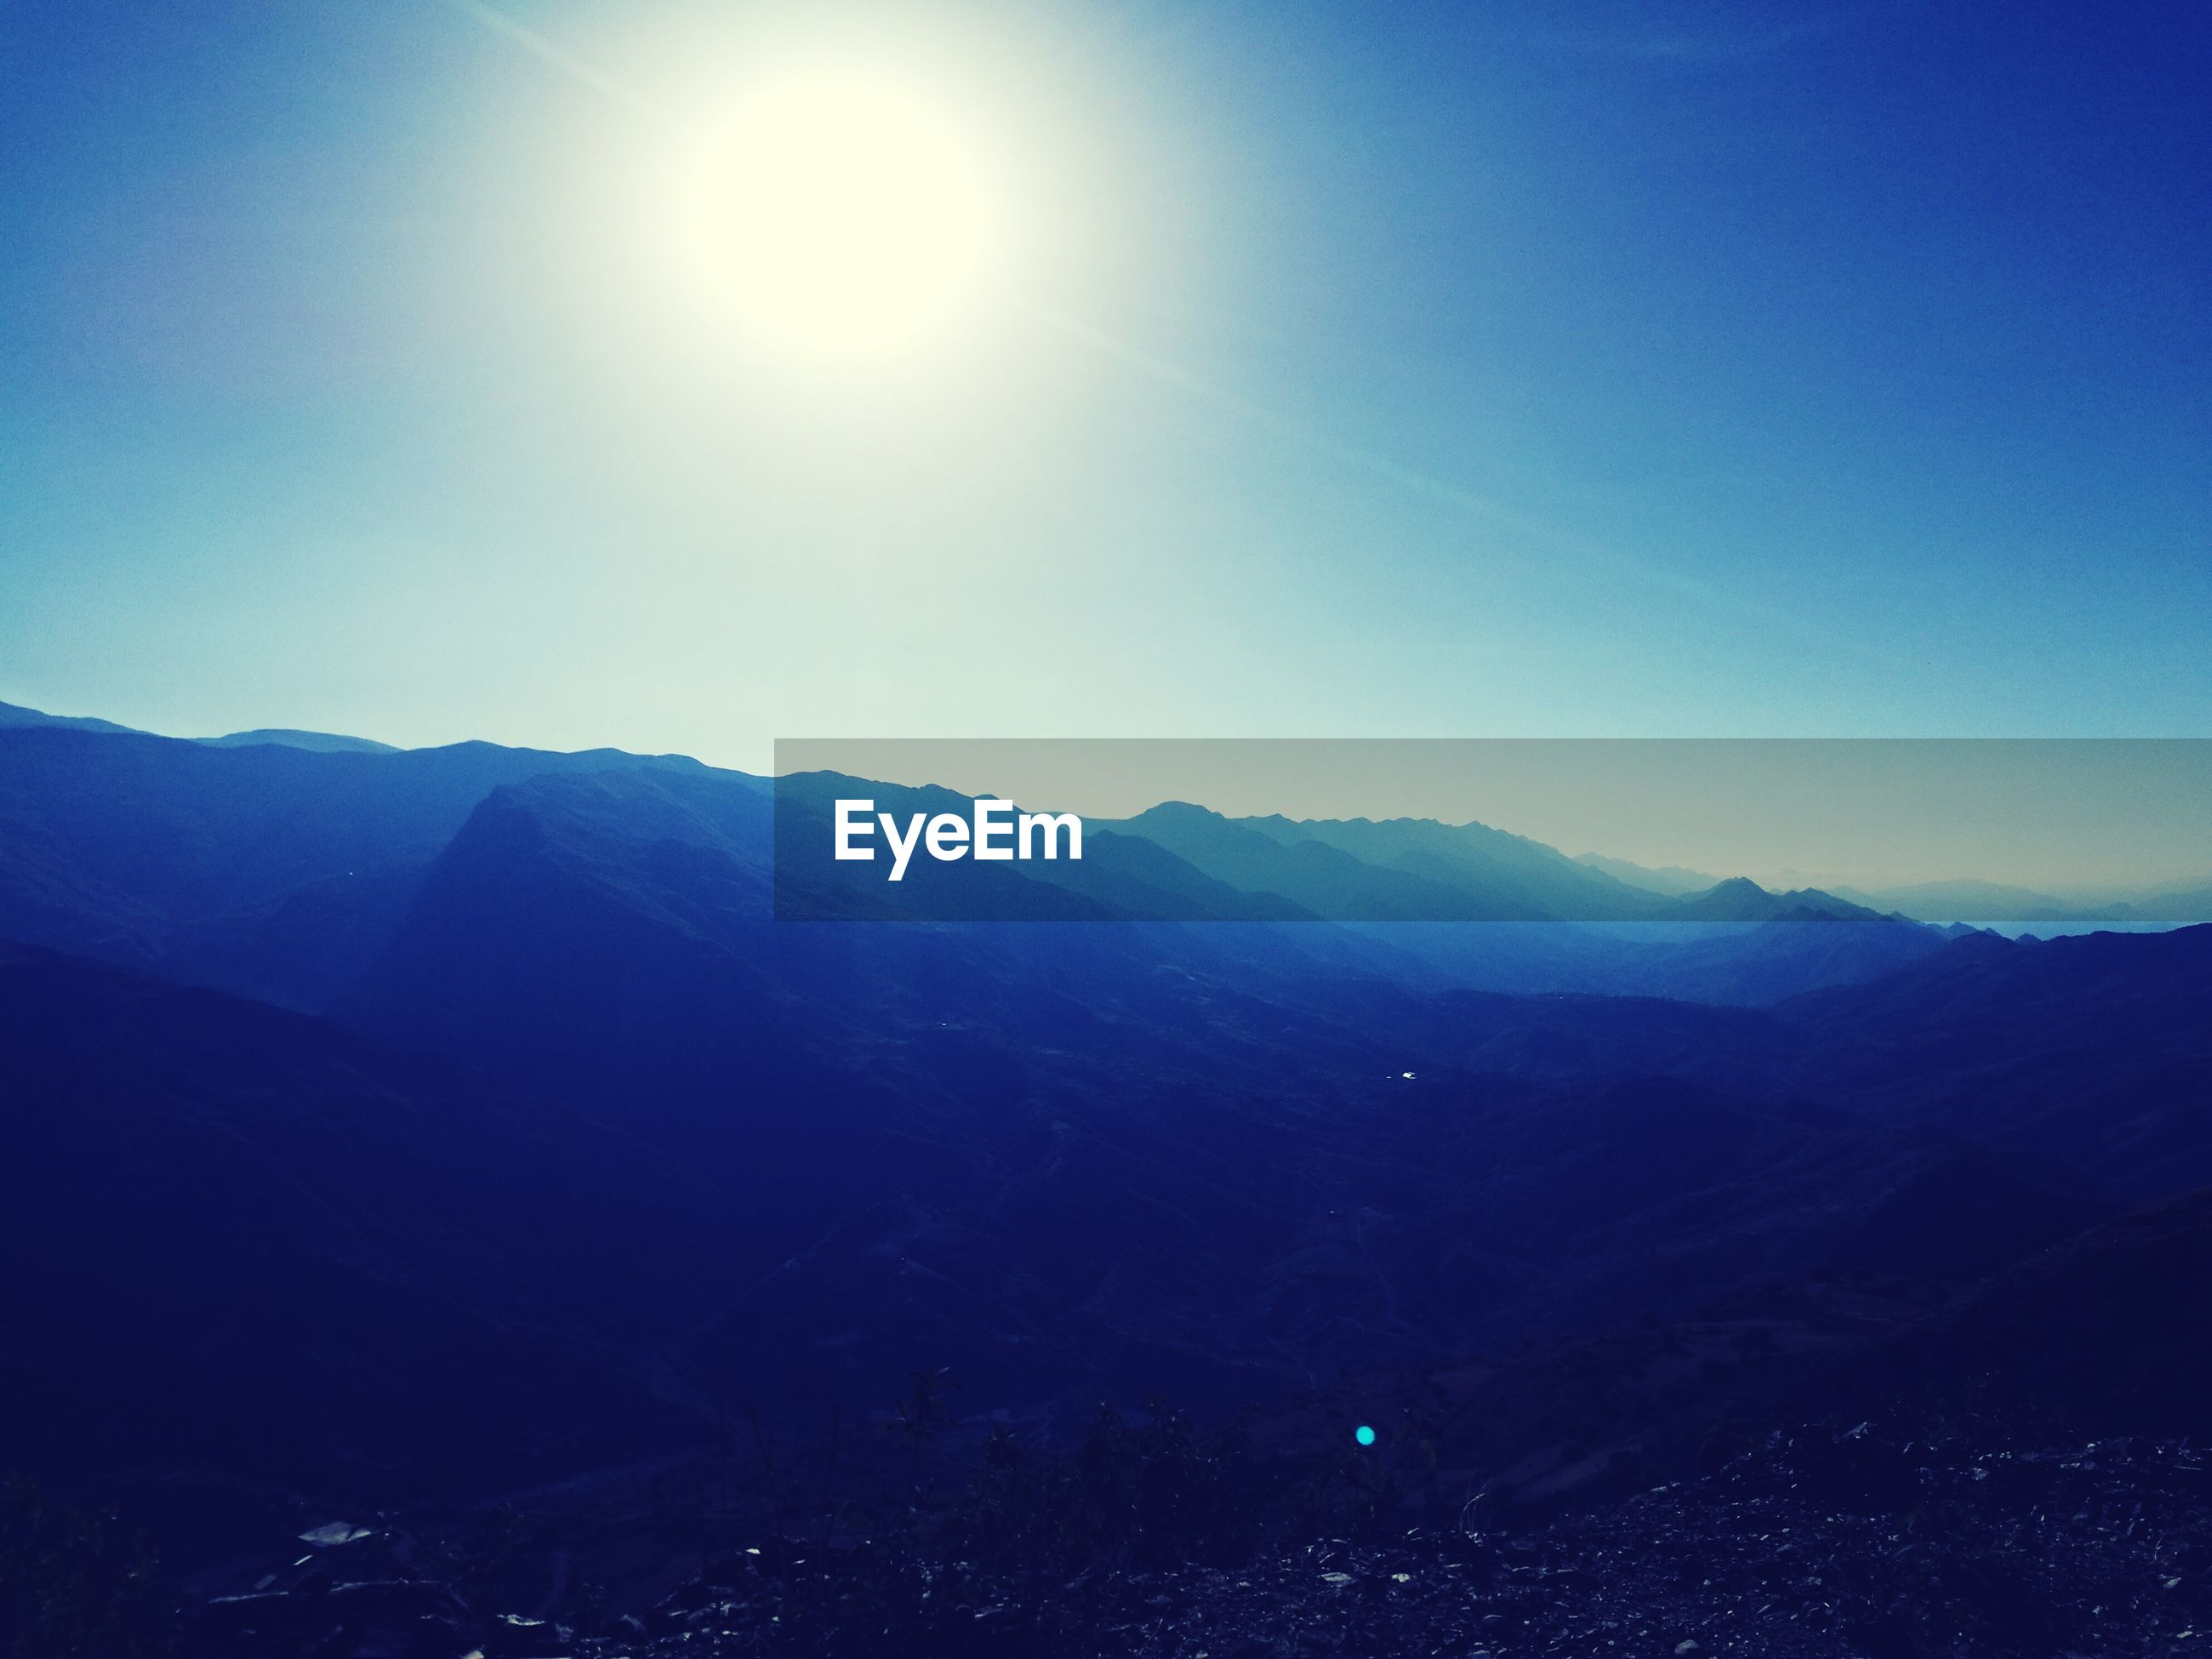 mountain, scenics, beauty in nature, blue, nature, tranquil scene, tranquility, sunlight, mountain range, sky, clear sky, outdoors, idyllic, sun, no people, low angle view, silhouette, landscape, day, tree